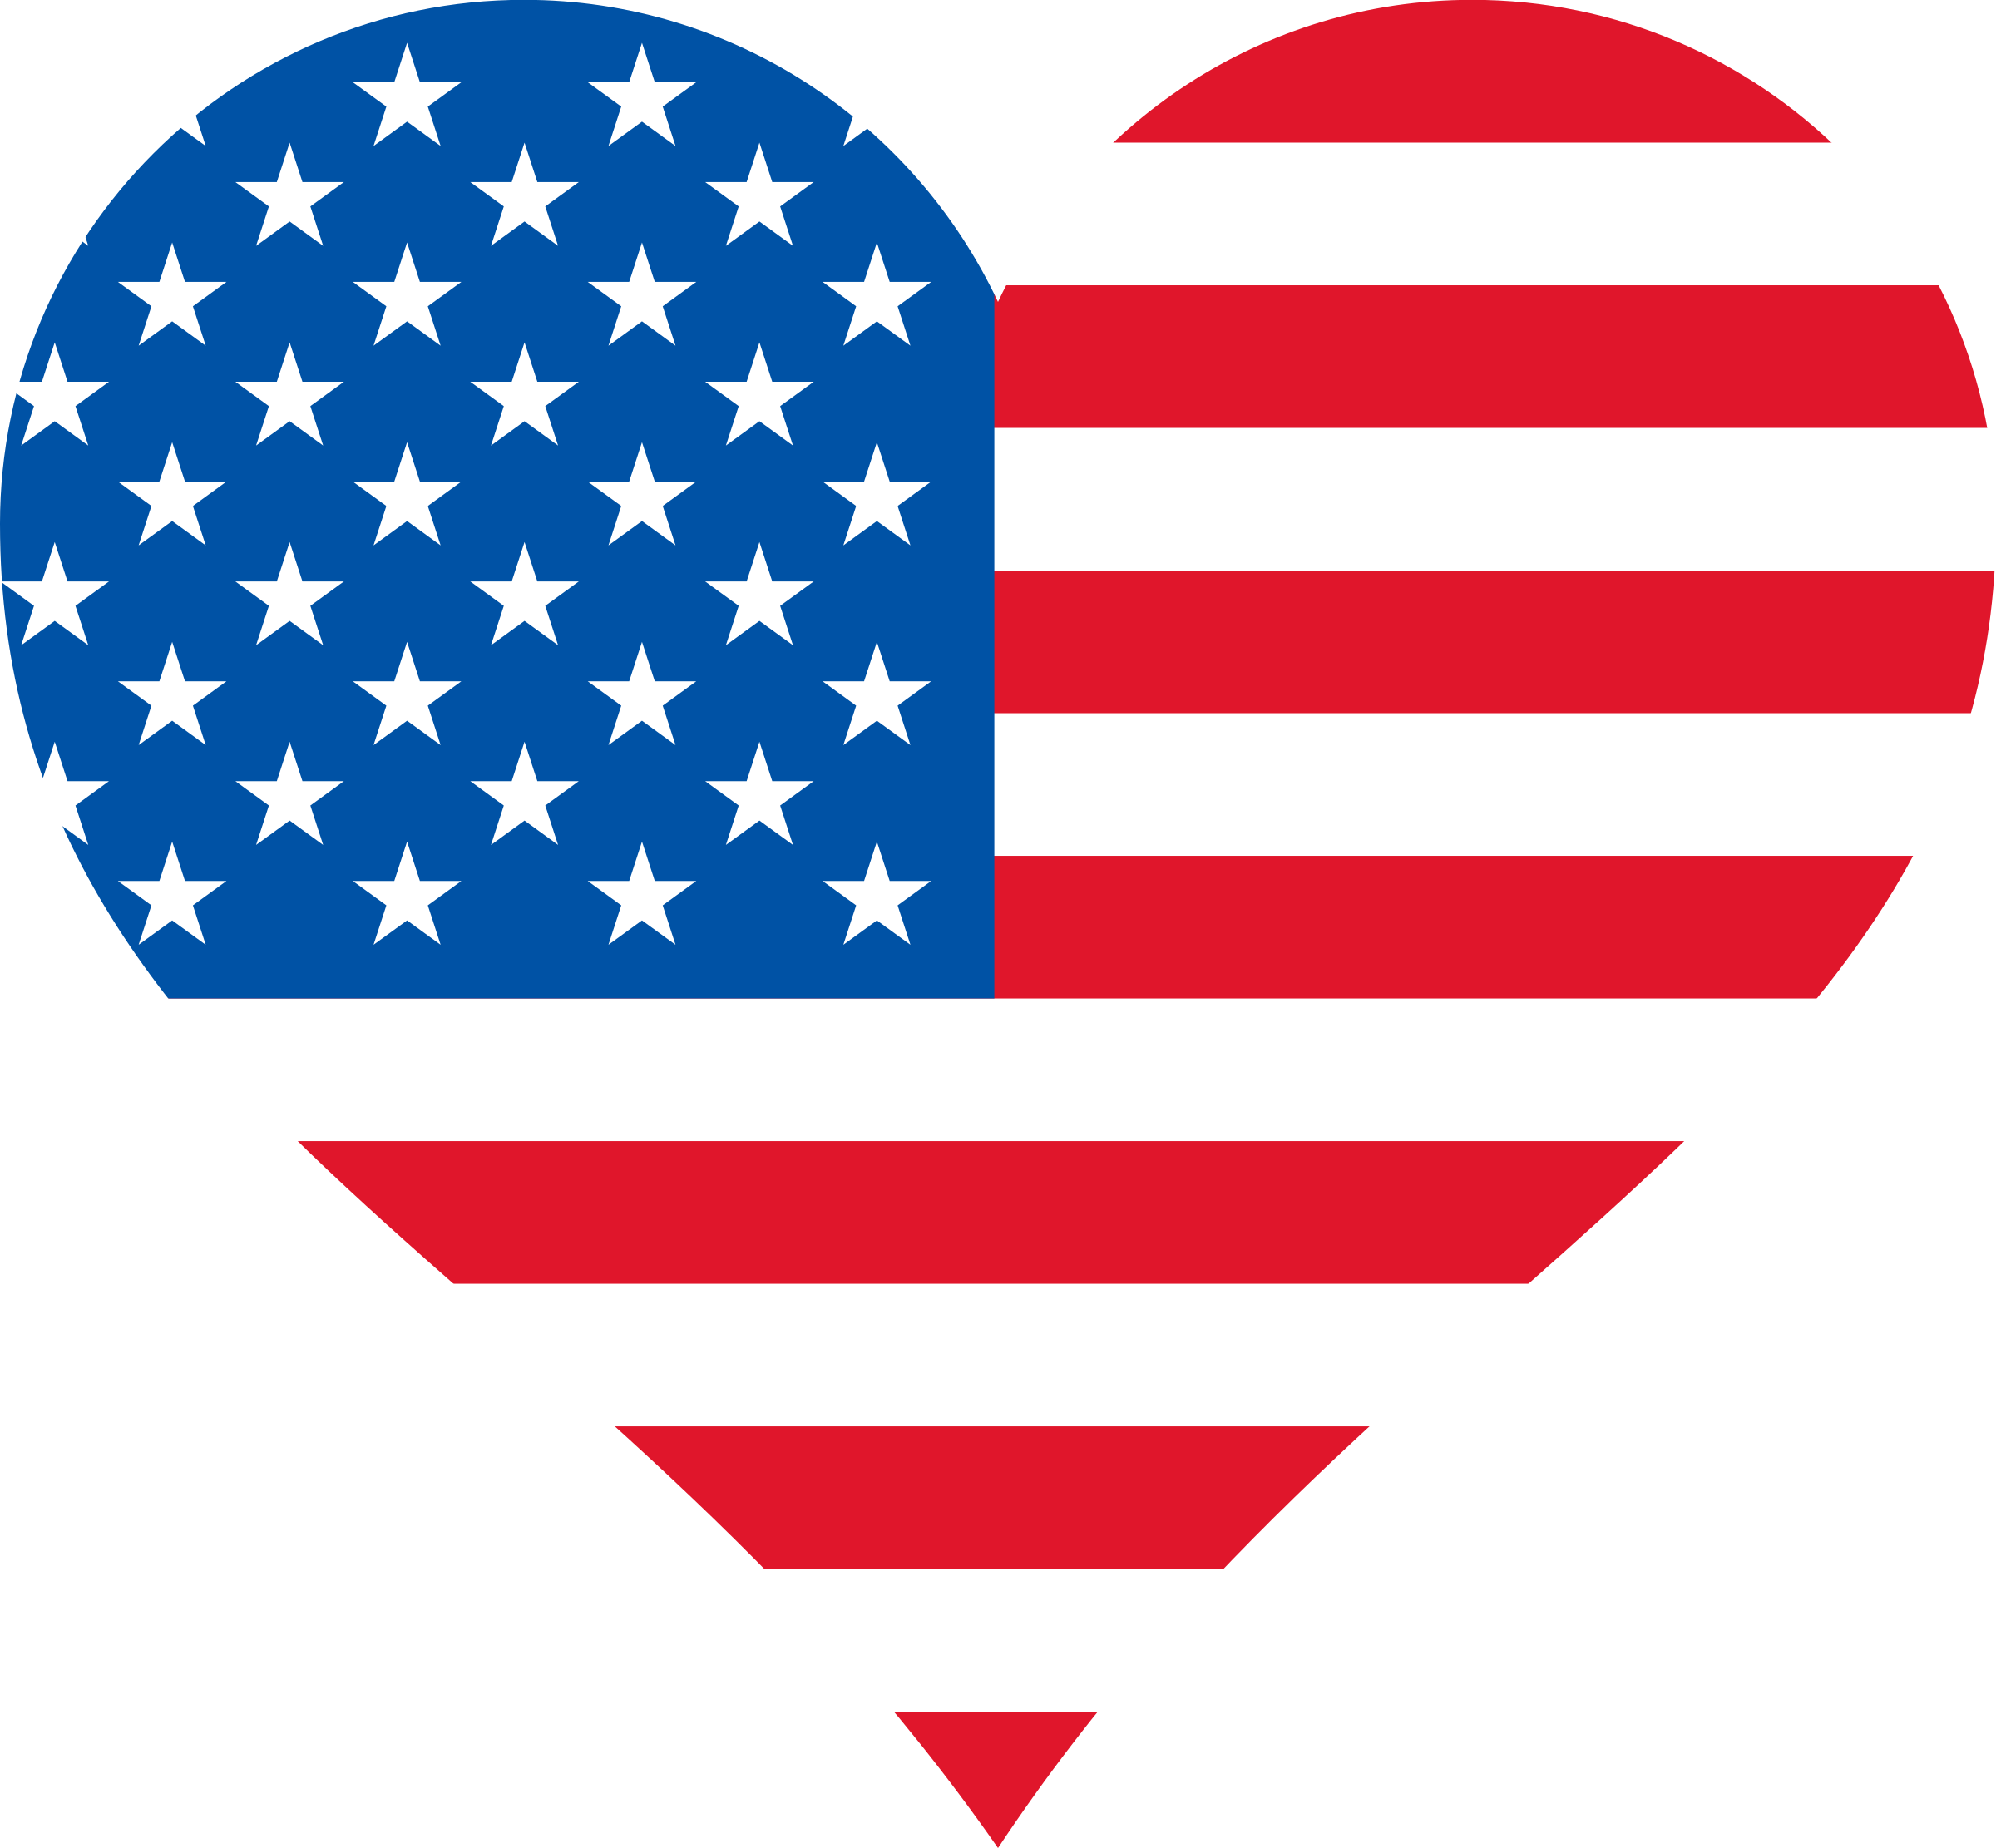 Stars and stripes usa. Ekg clipart heart shaped